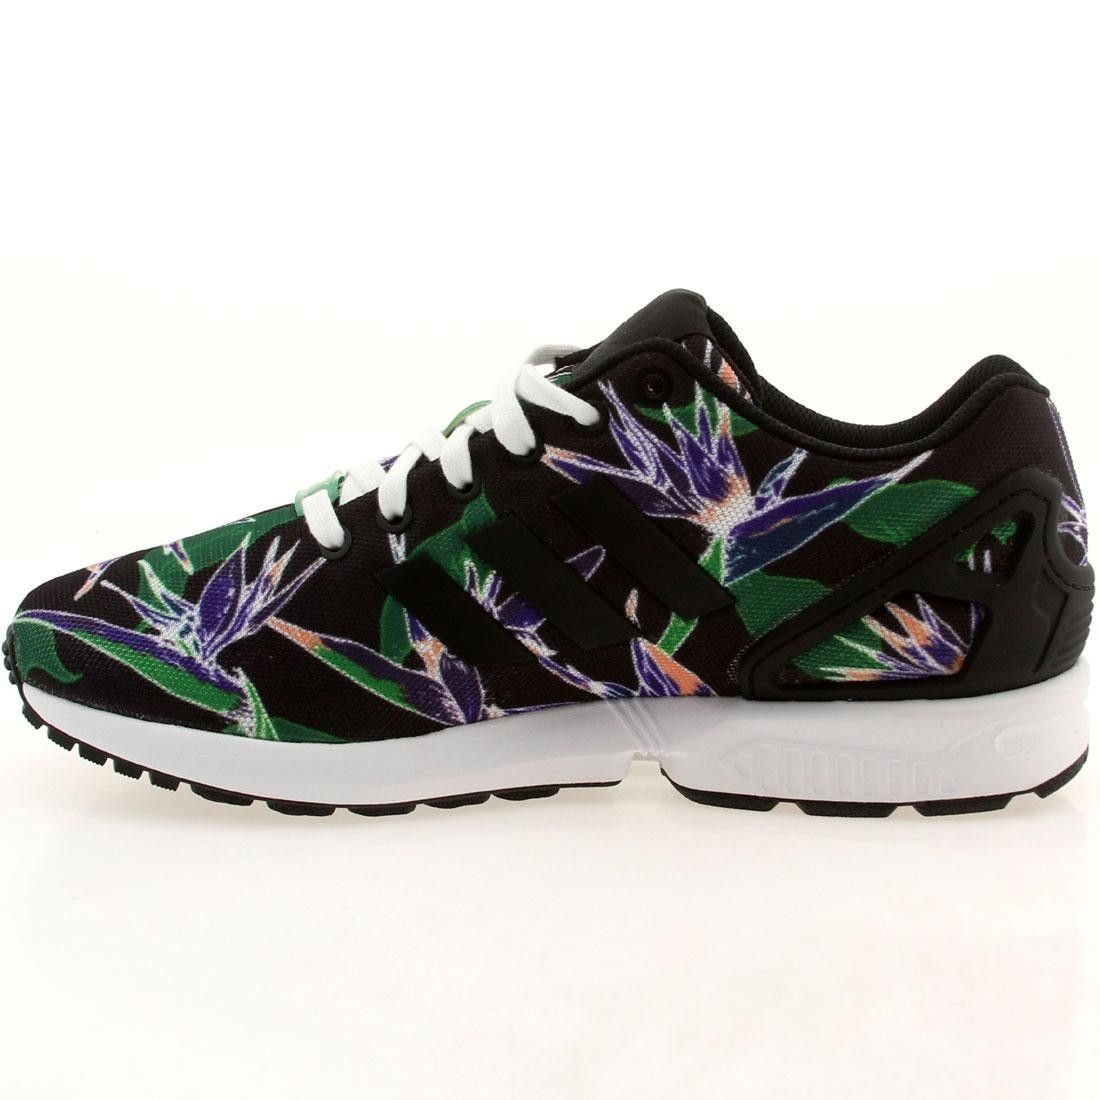 Adidas Originals ZX Flux B34518 Mens shoes FLORAL Core Black